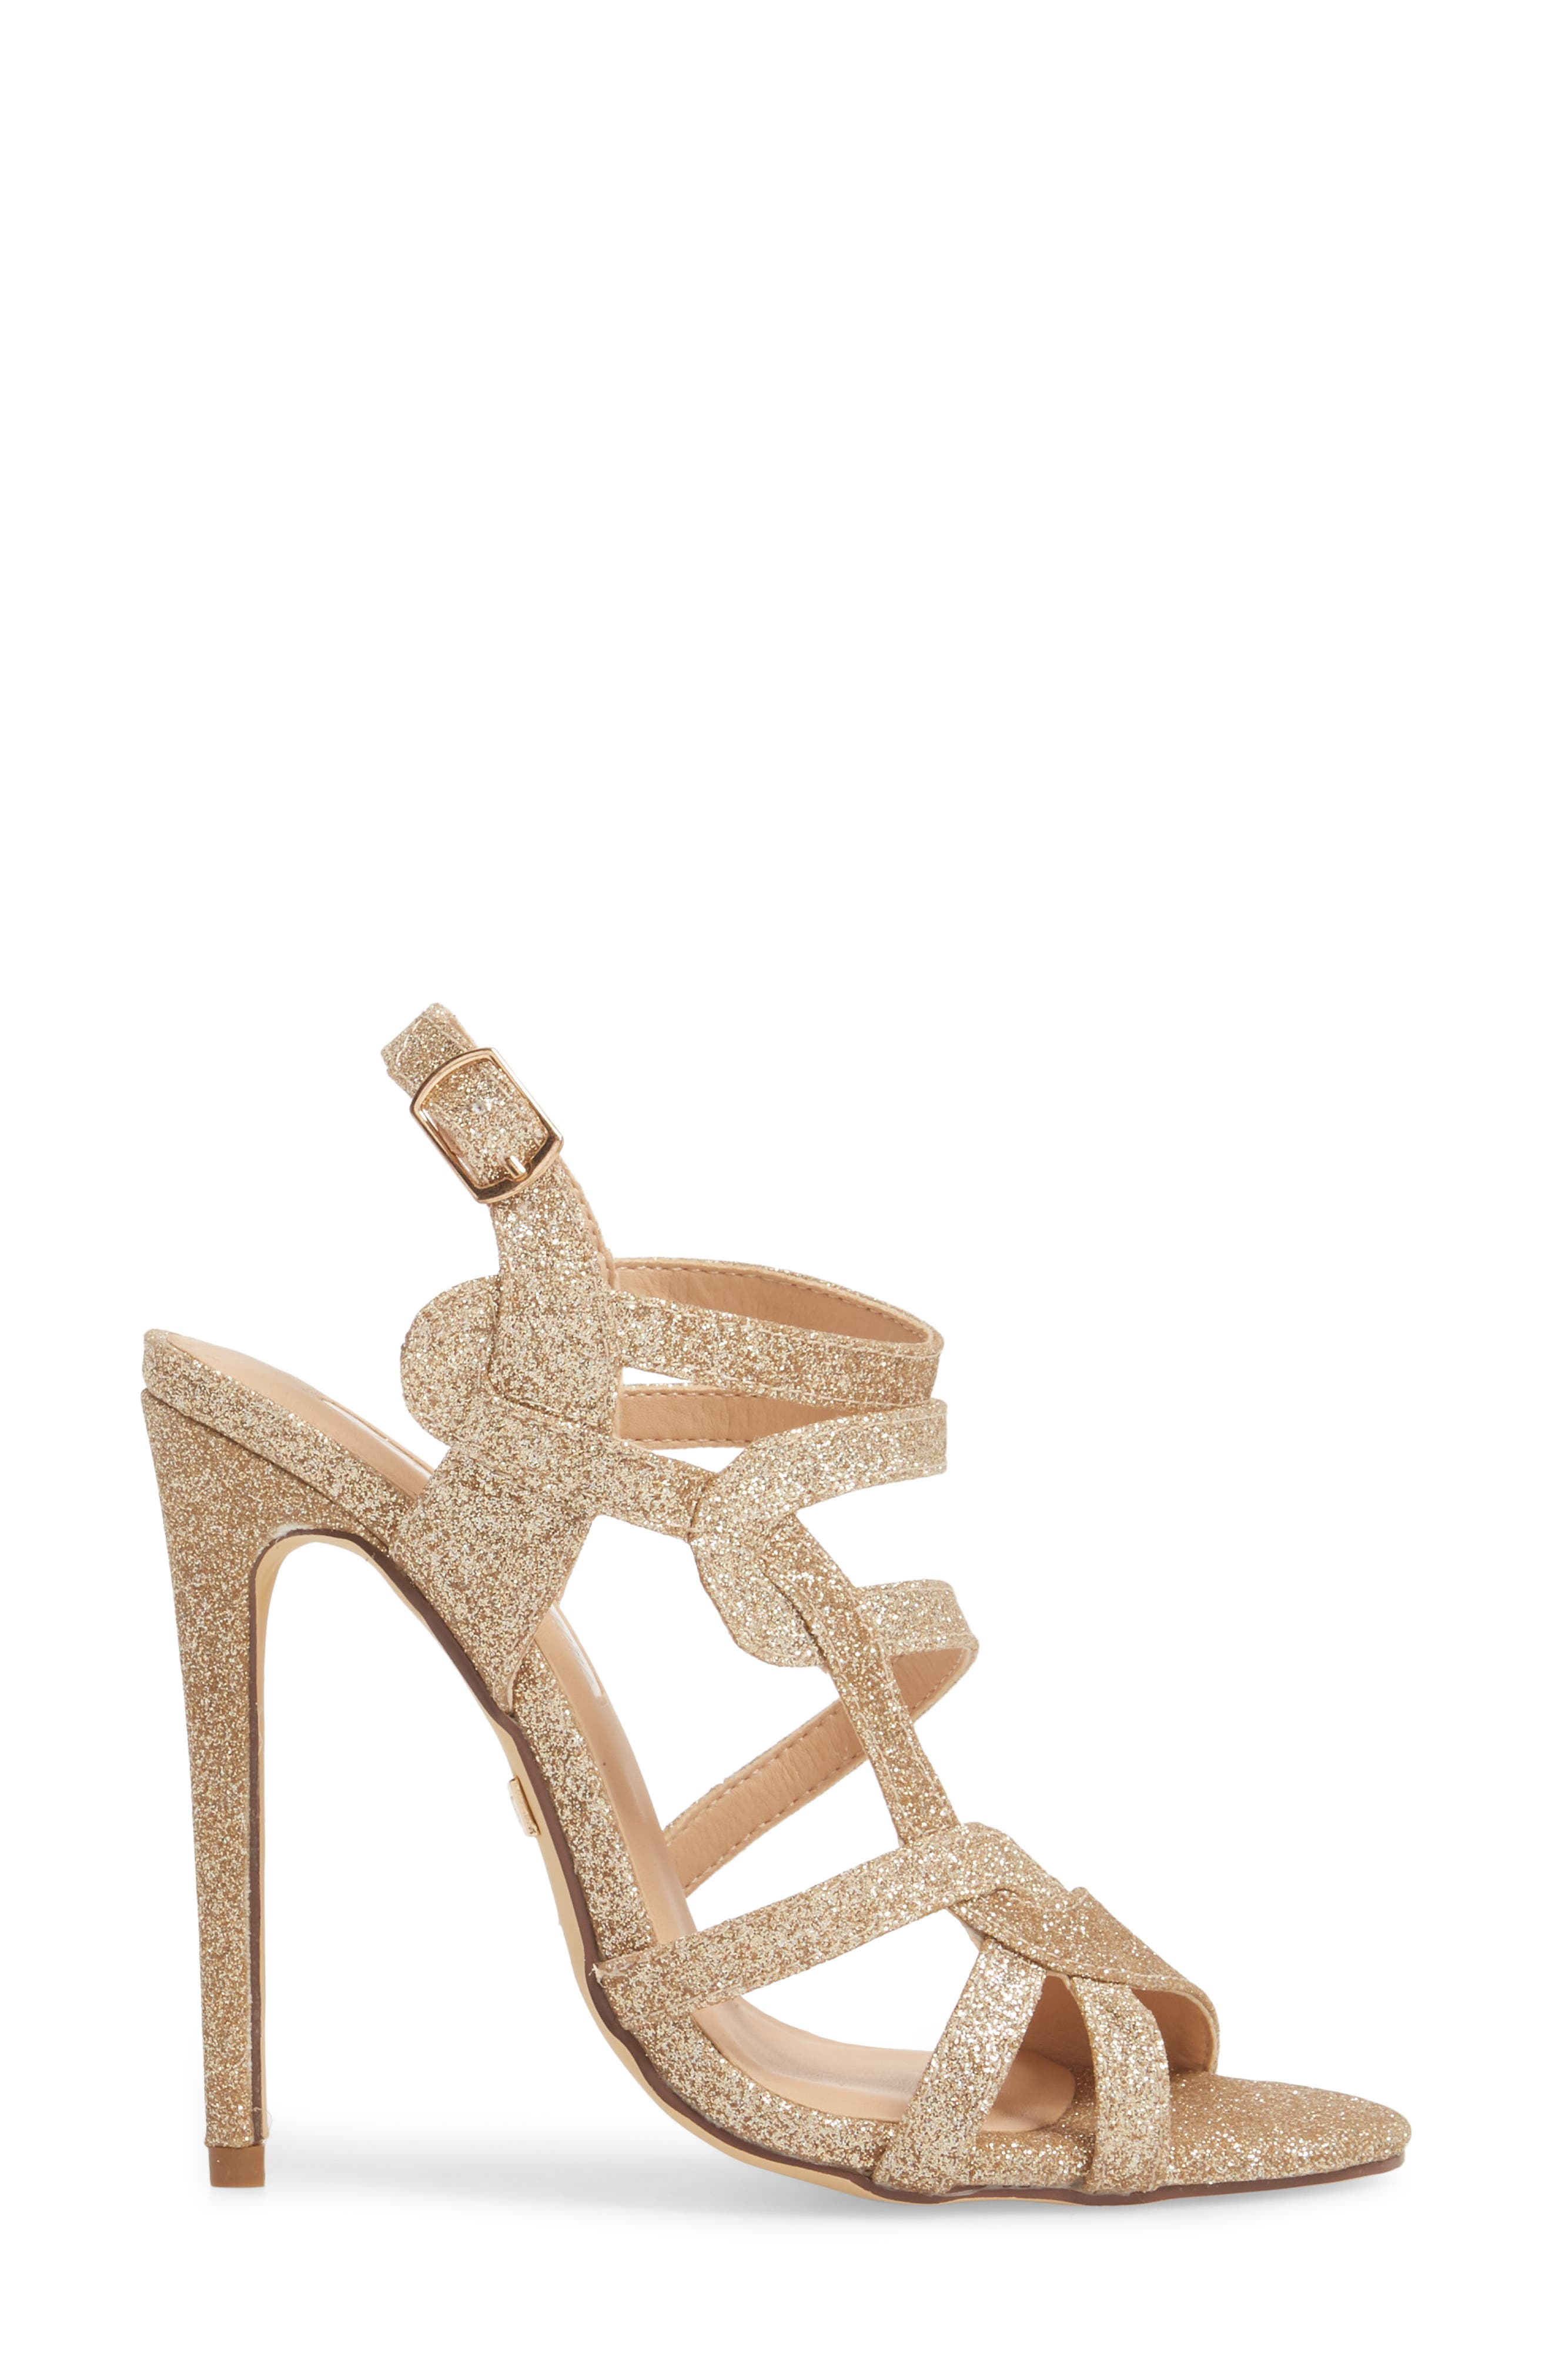 LAUREN LORRAINE, Gidget Sandal, Alternate thumbnail 3, color, NUDE FABRIC